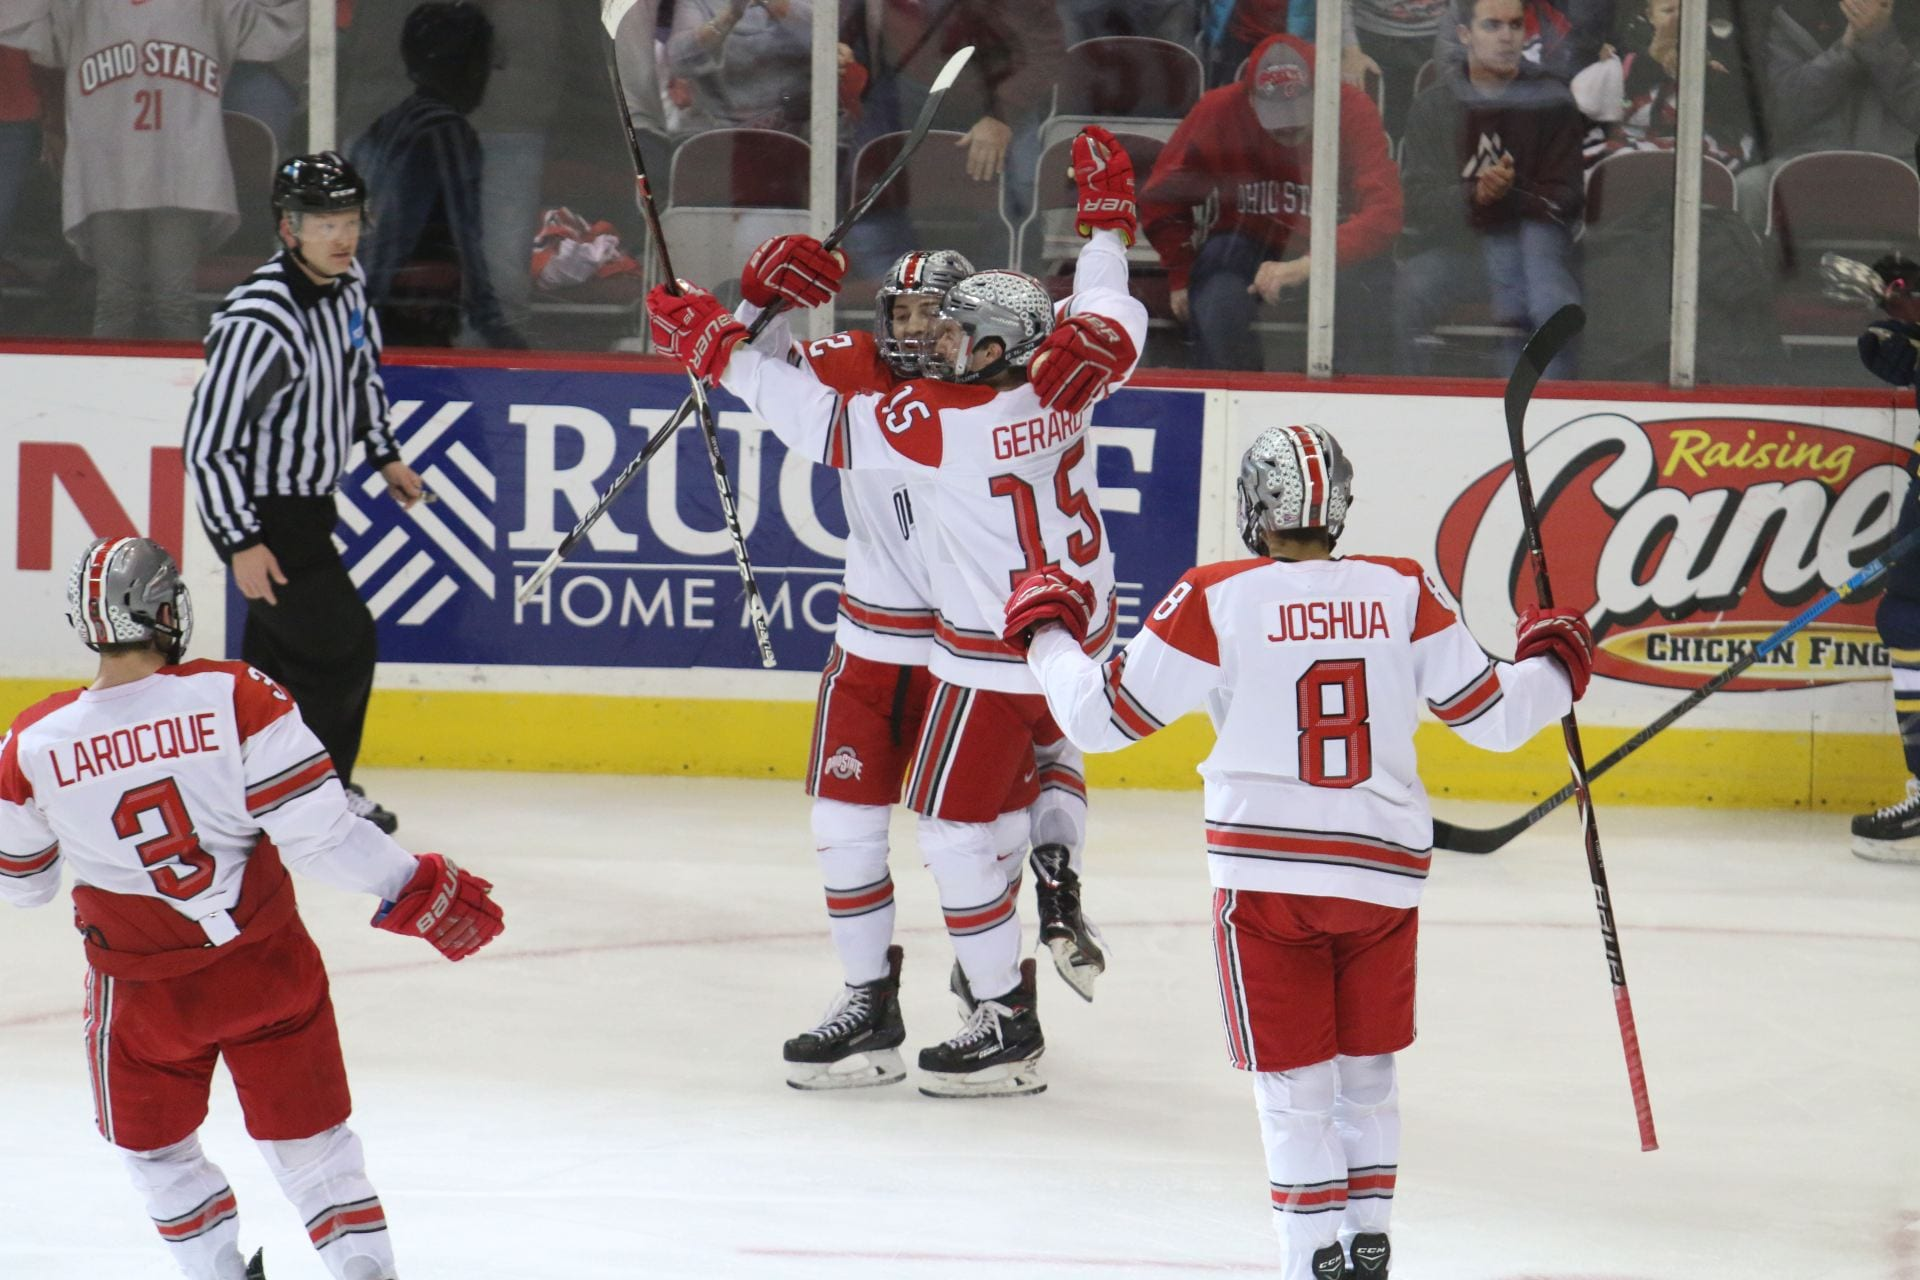 another chance 314a7 01903 Men's Hockey: No. 4 Ohio State sweeps No. 13 Penn State in ...